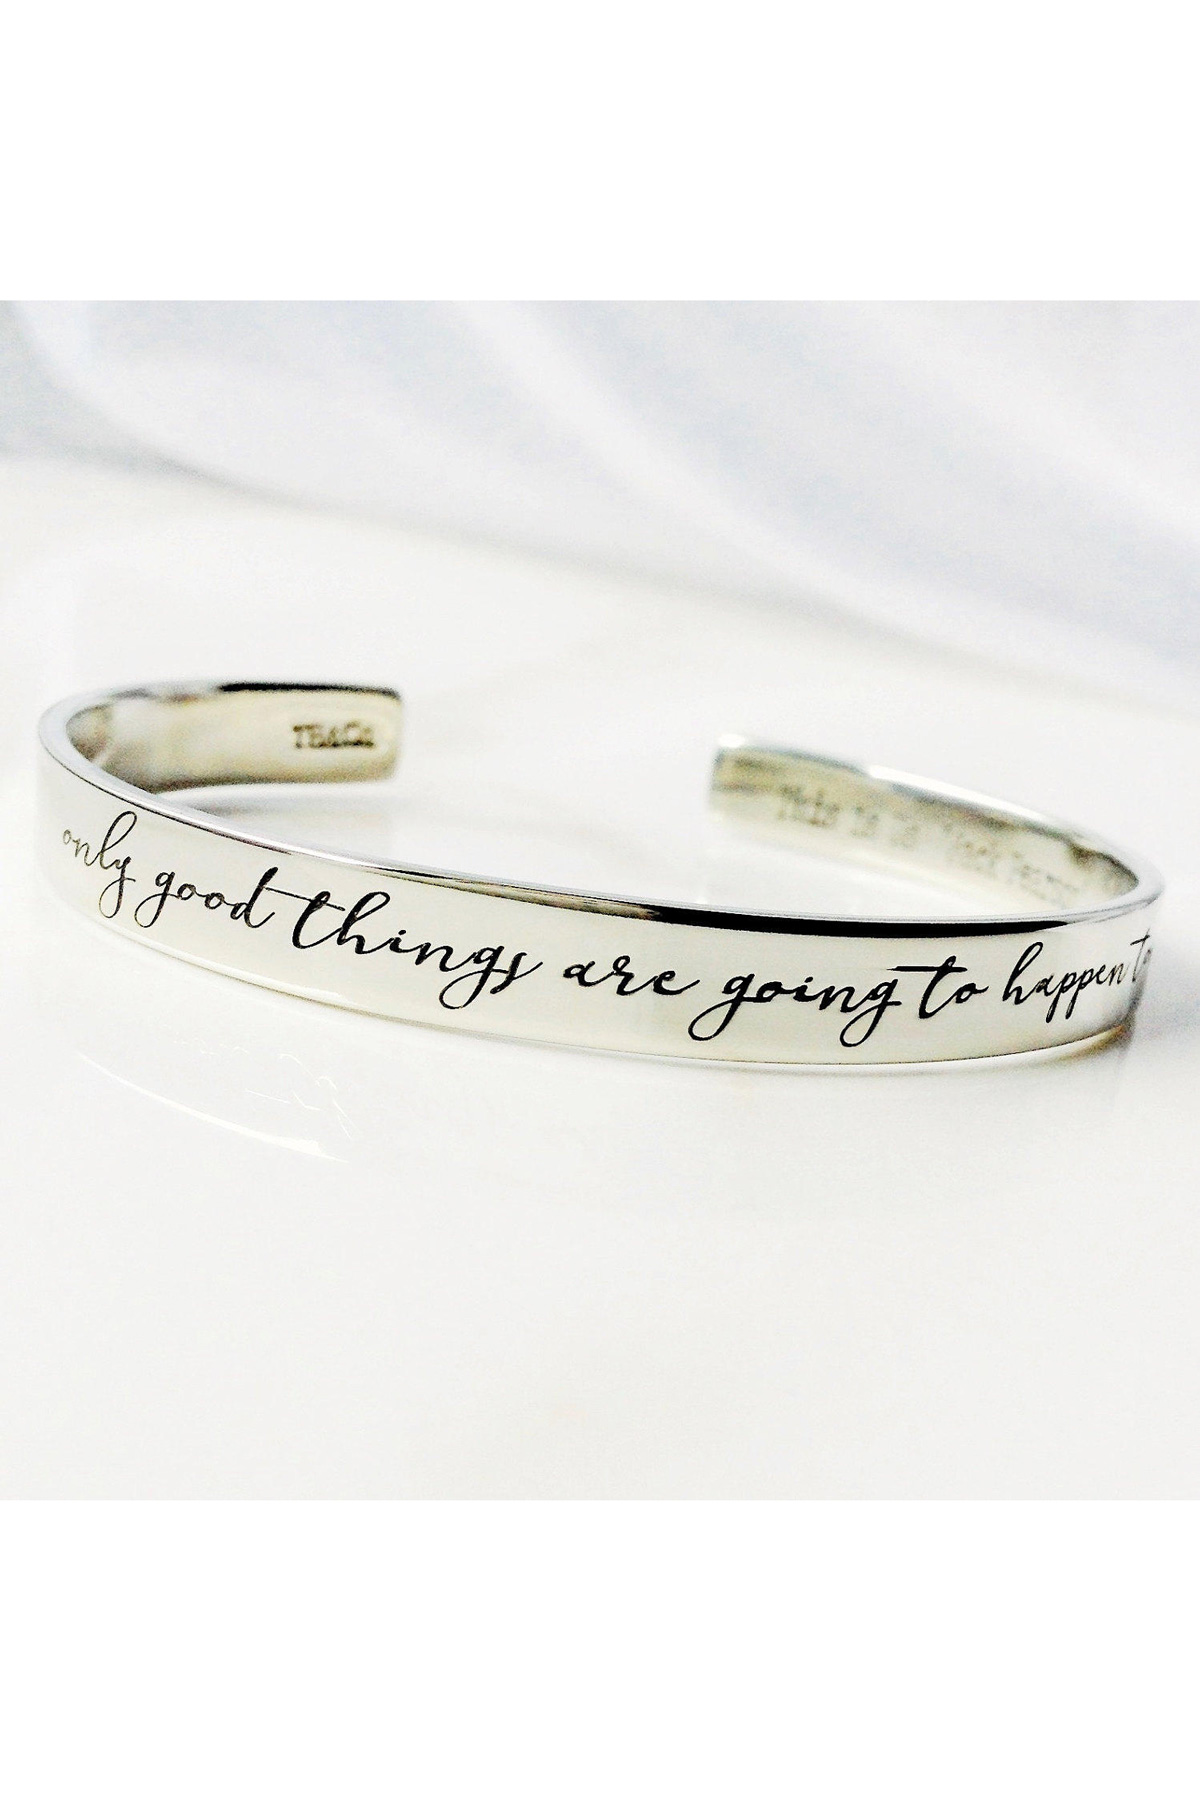 """Only Good Things Are Going to Happen Today"" Bracelet"